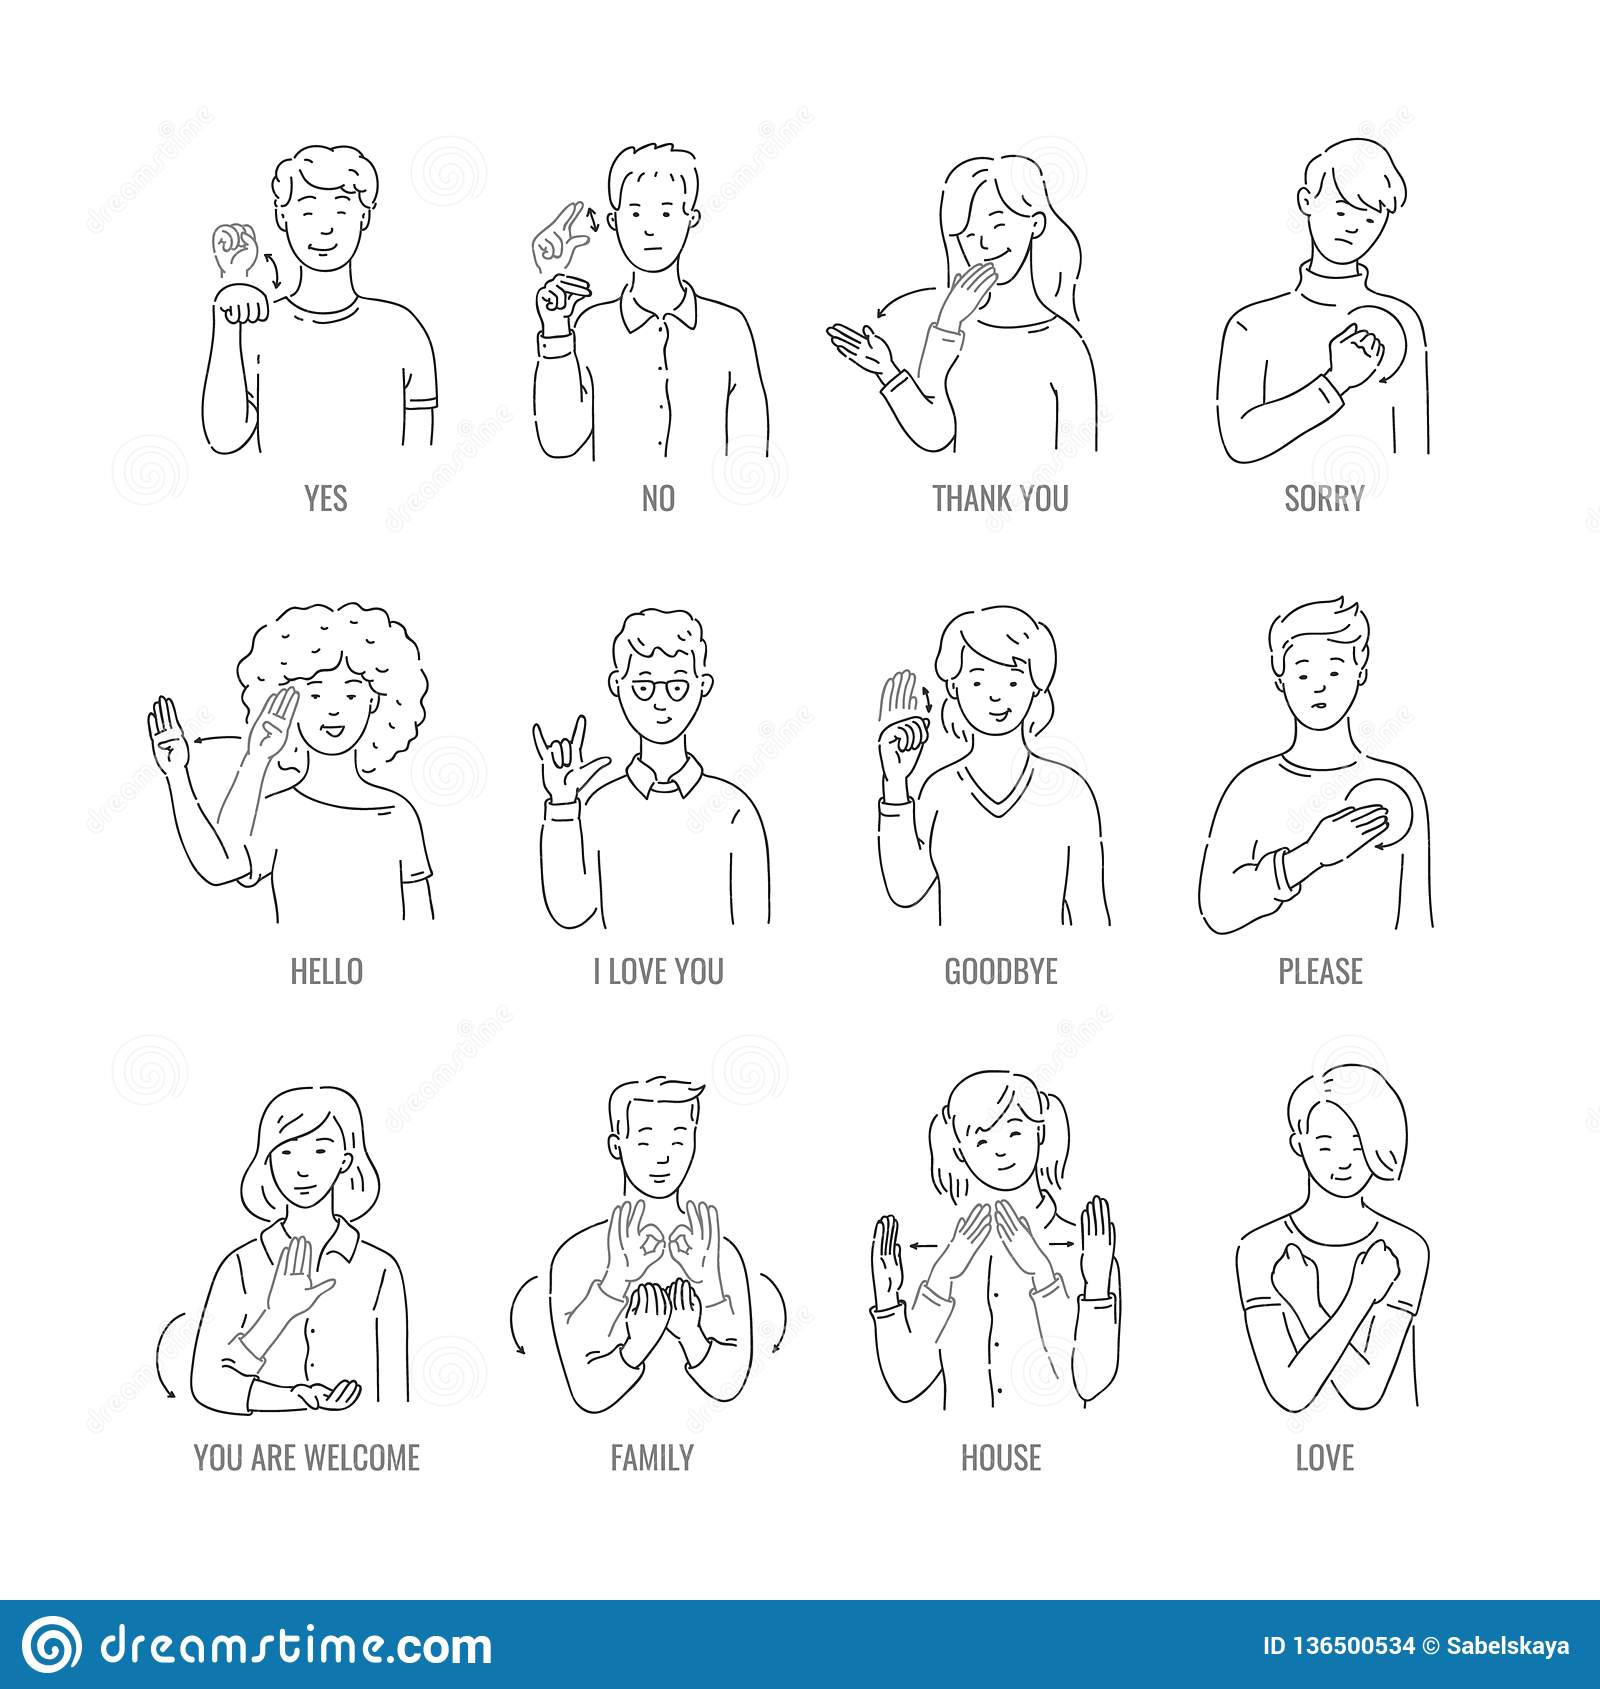 35 Ideas For Hello In Sign Language Pictures